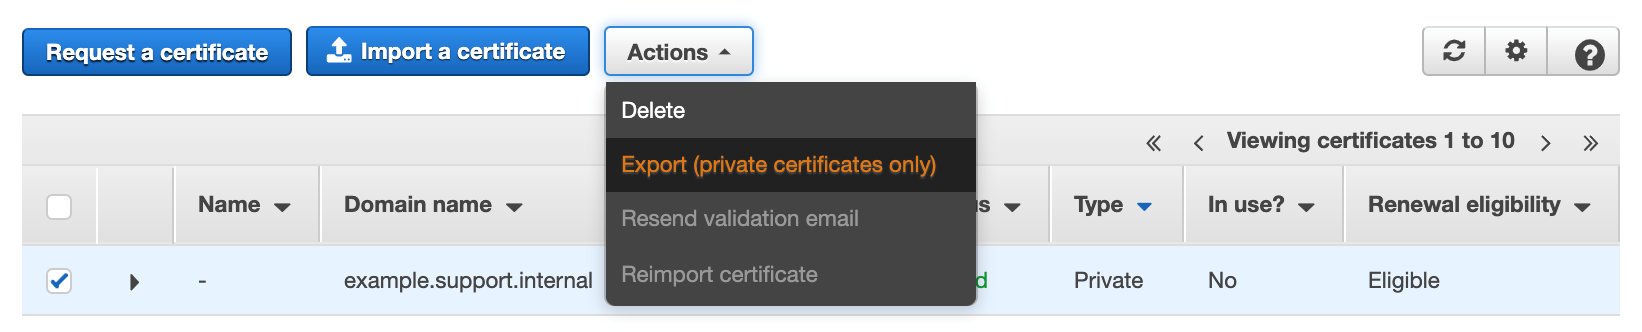 Figure 7: Export (private certificates only)